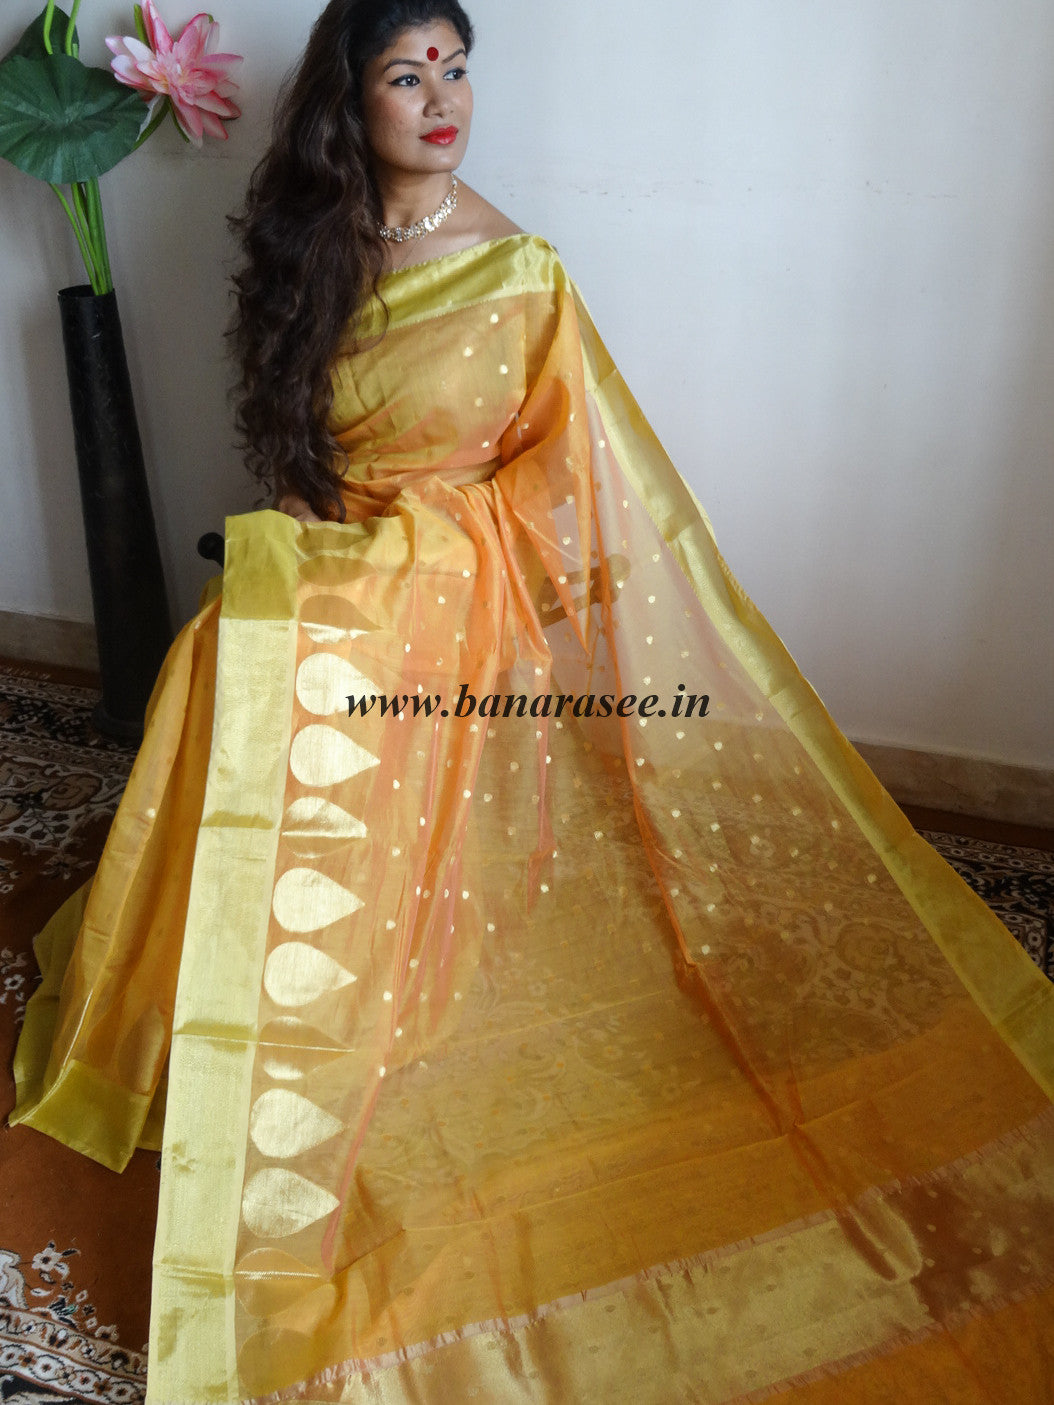 Banarasee Chanderi Cotton Gold Buti Saree-Gold